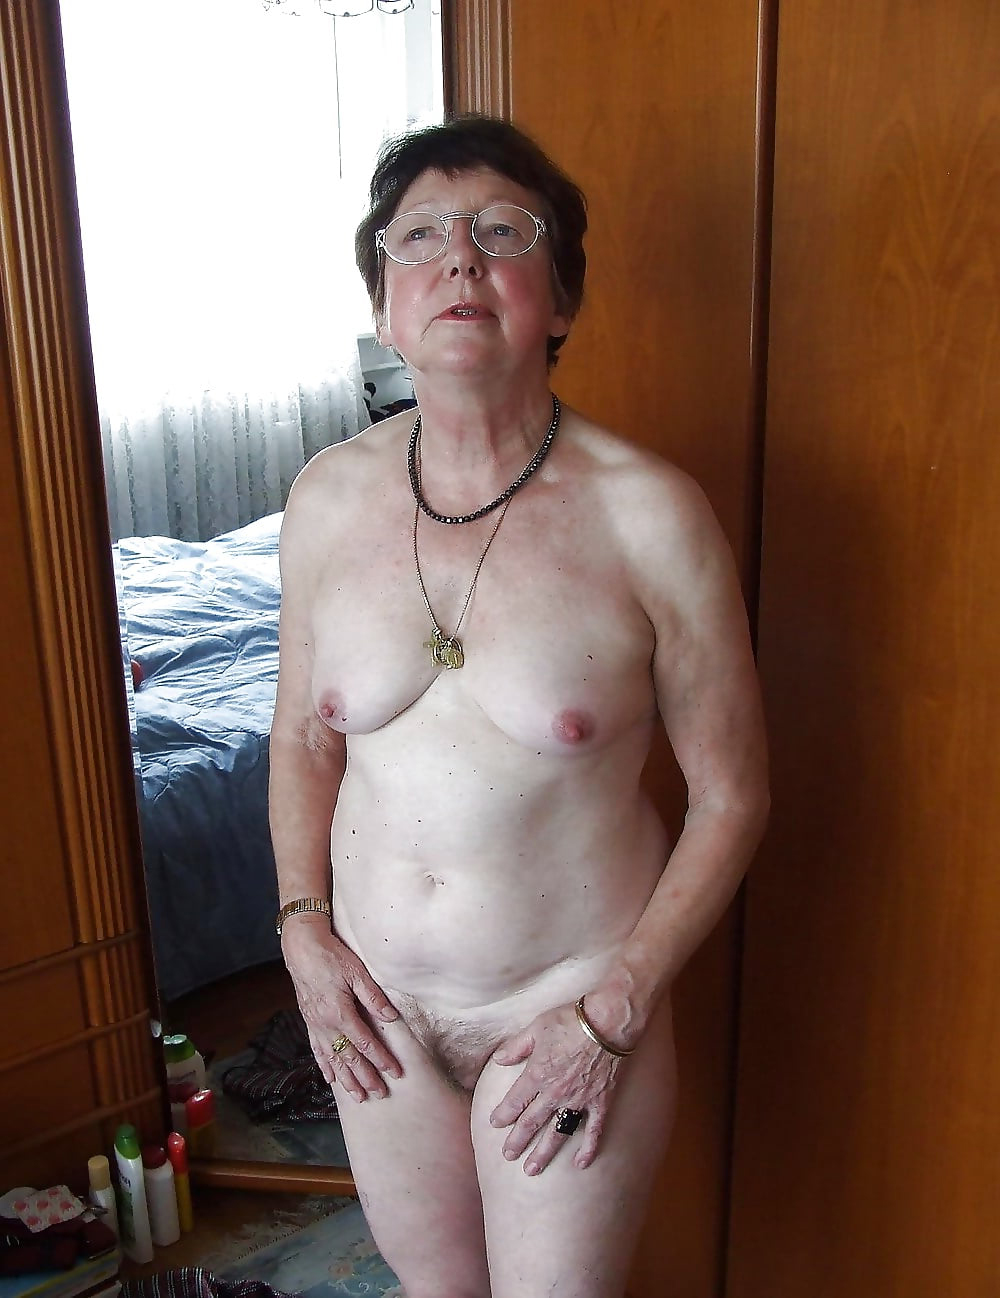 Old lady with nice boobs